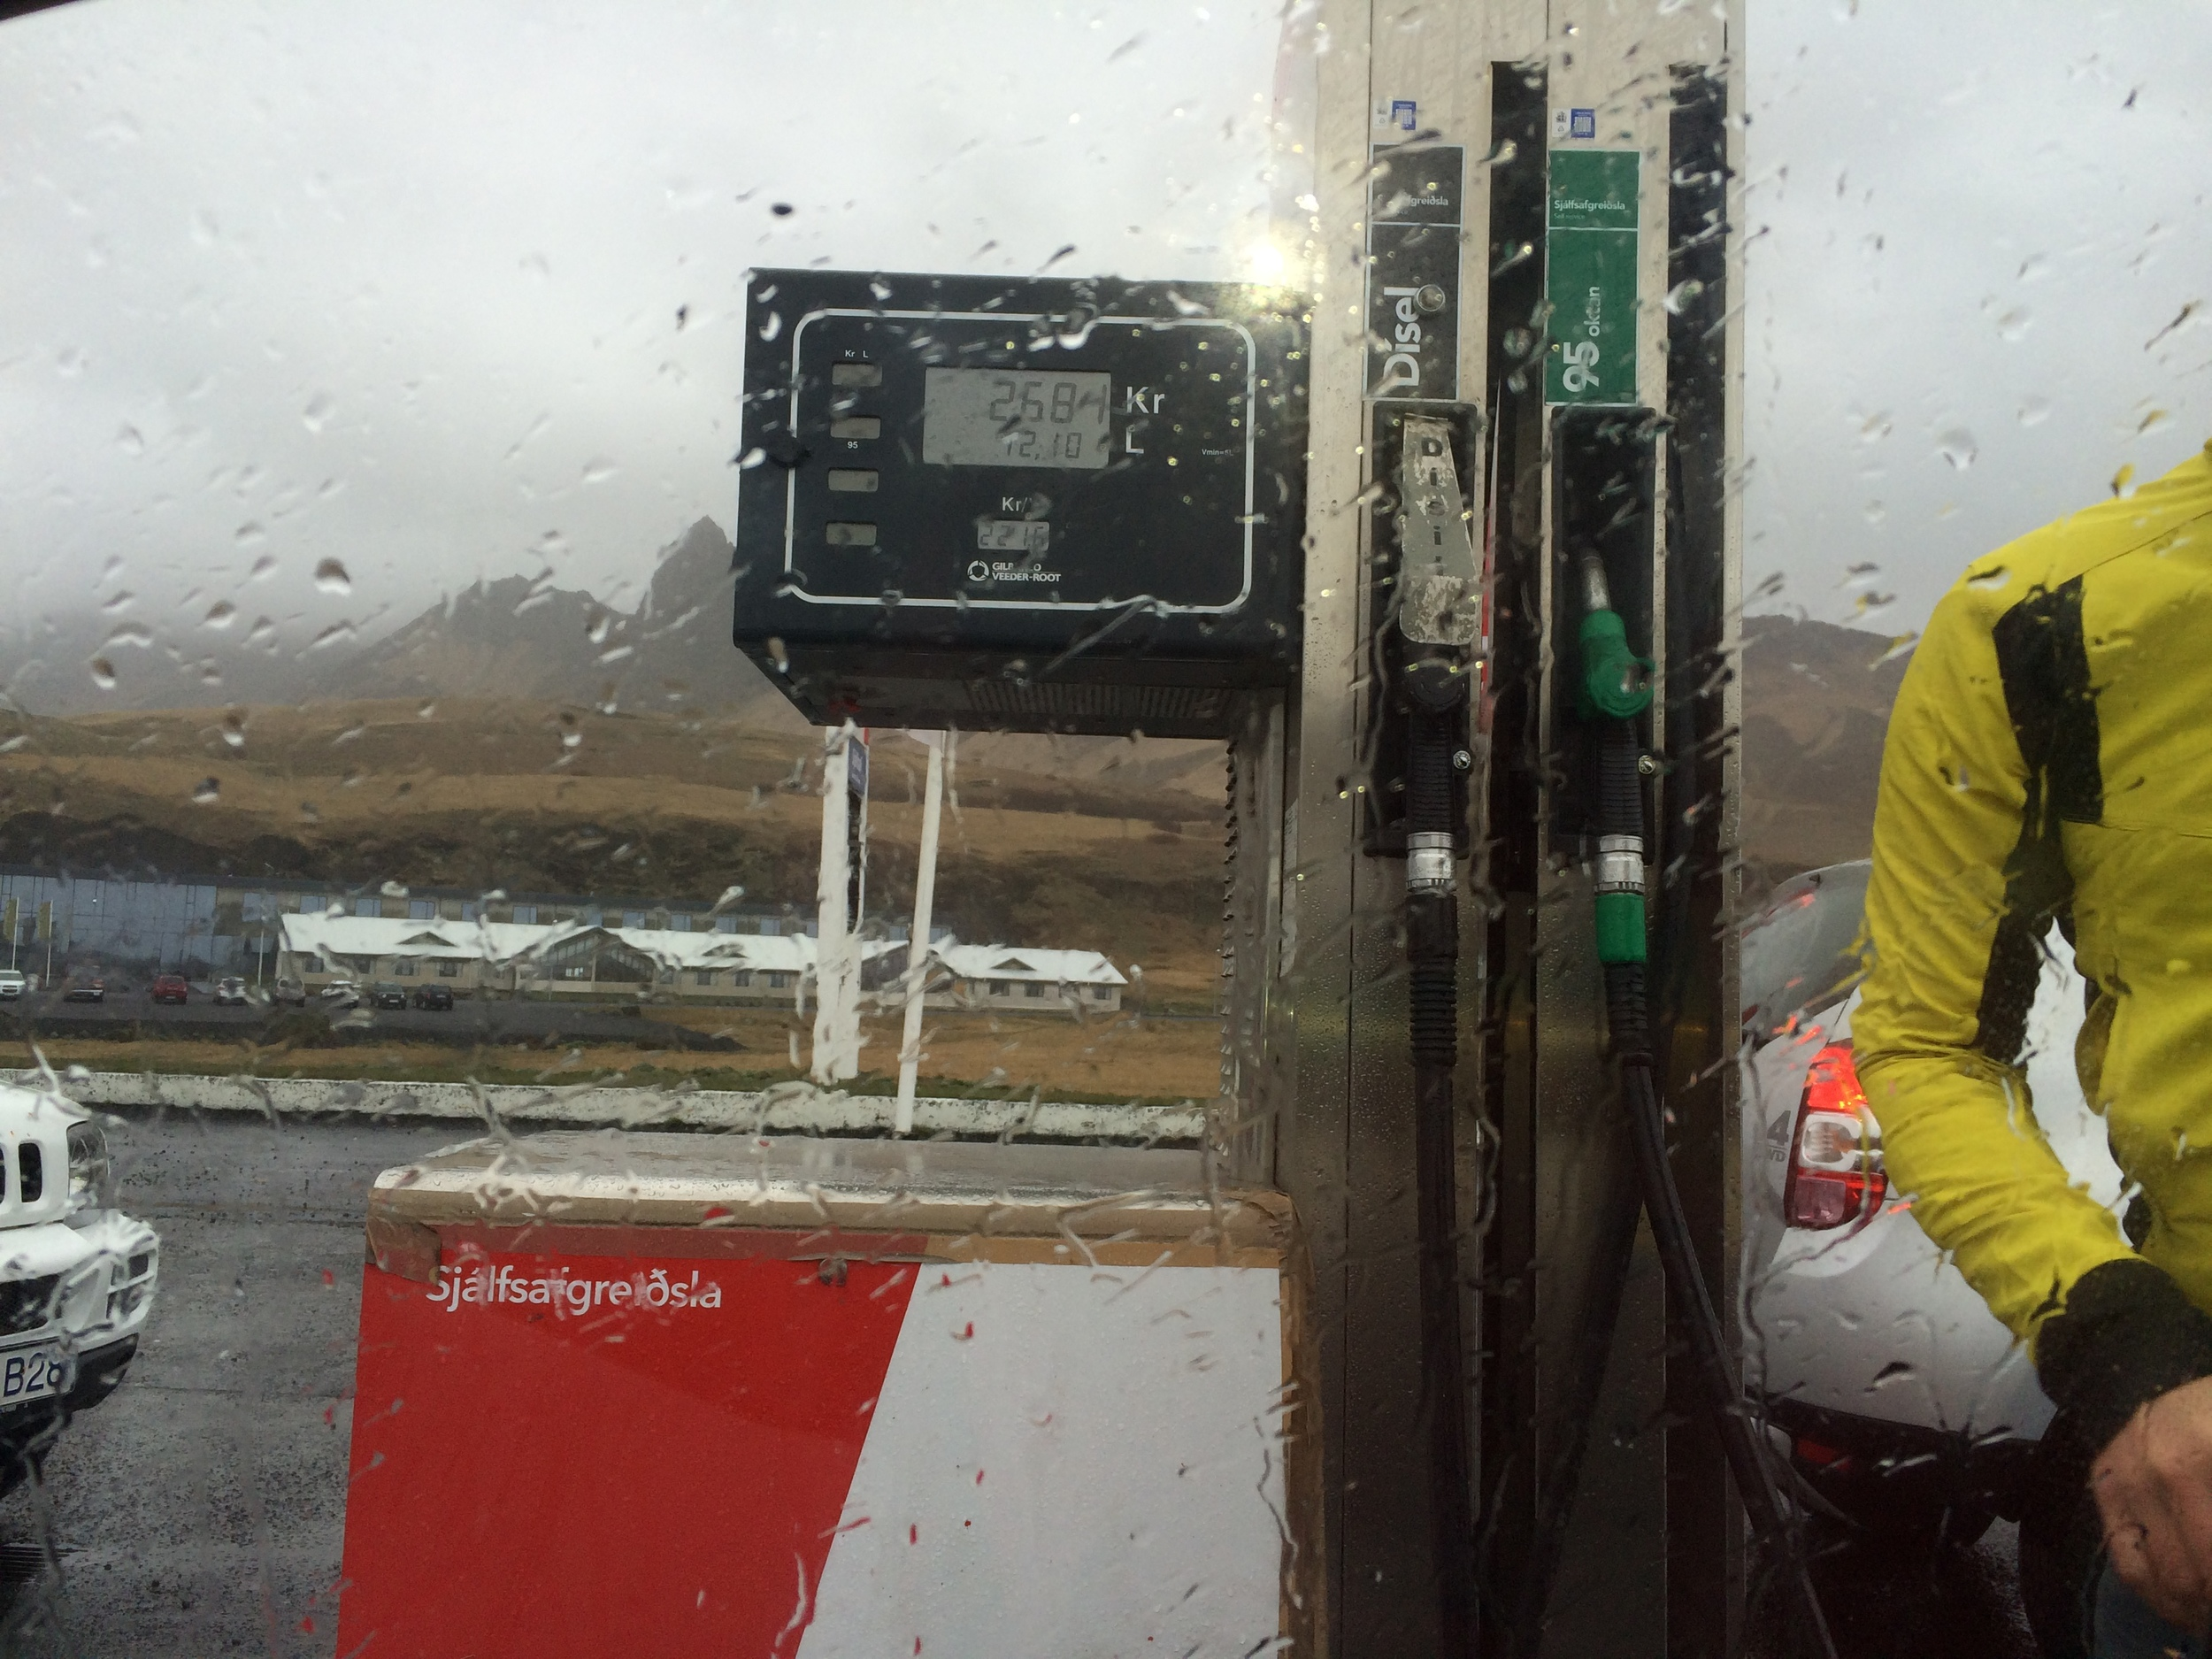 No matter where you are in Iceland, or what the weather is, always get gas when you can.